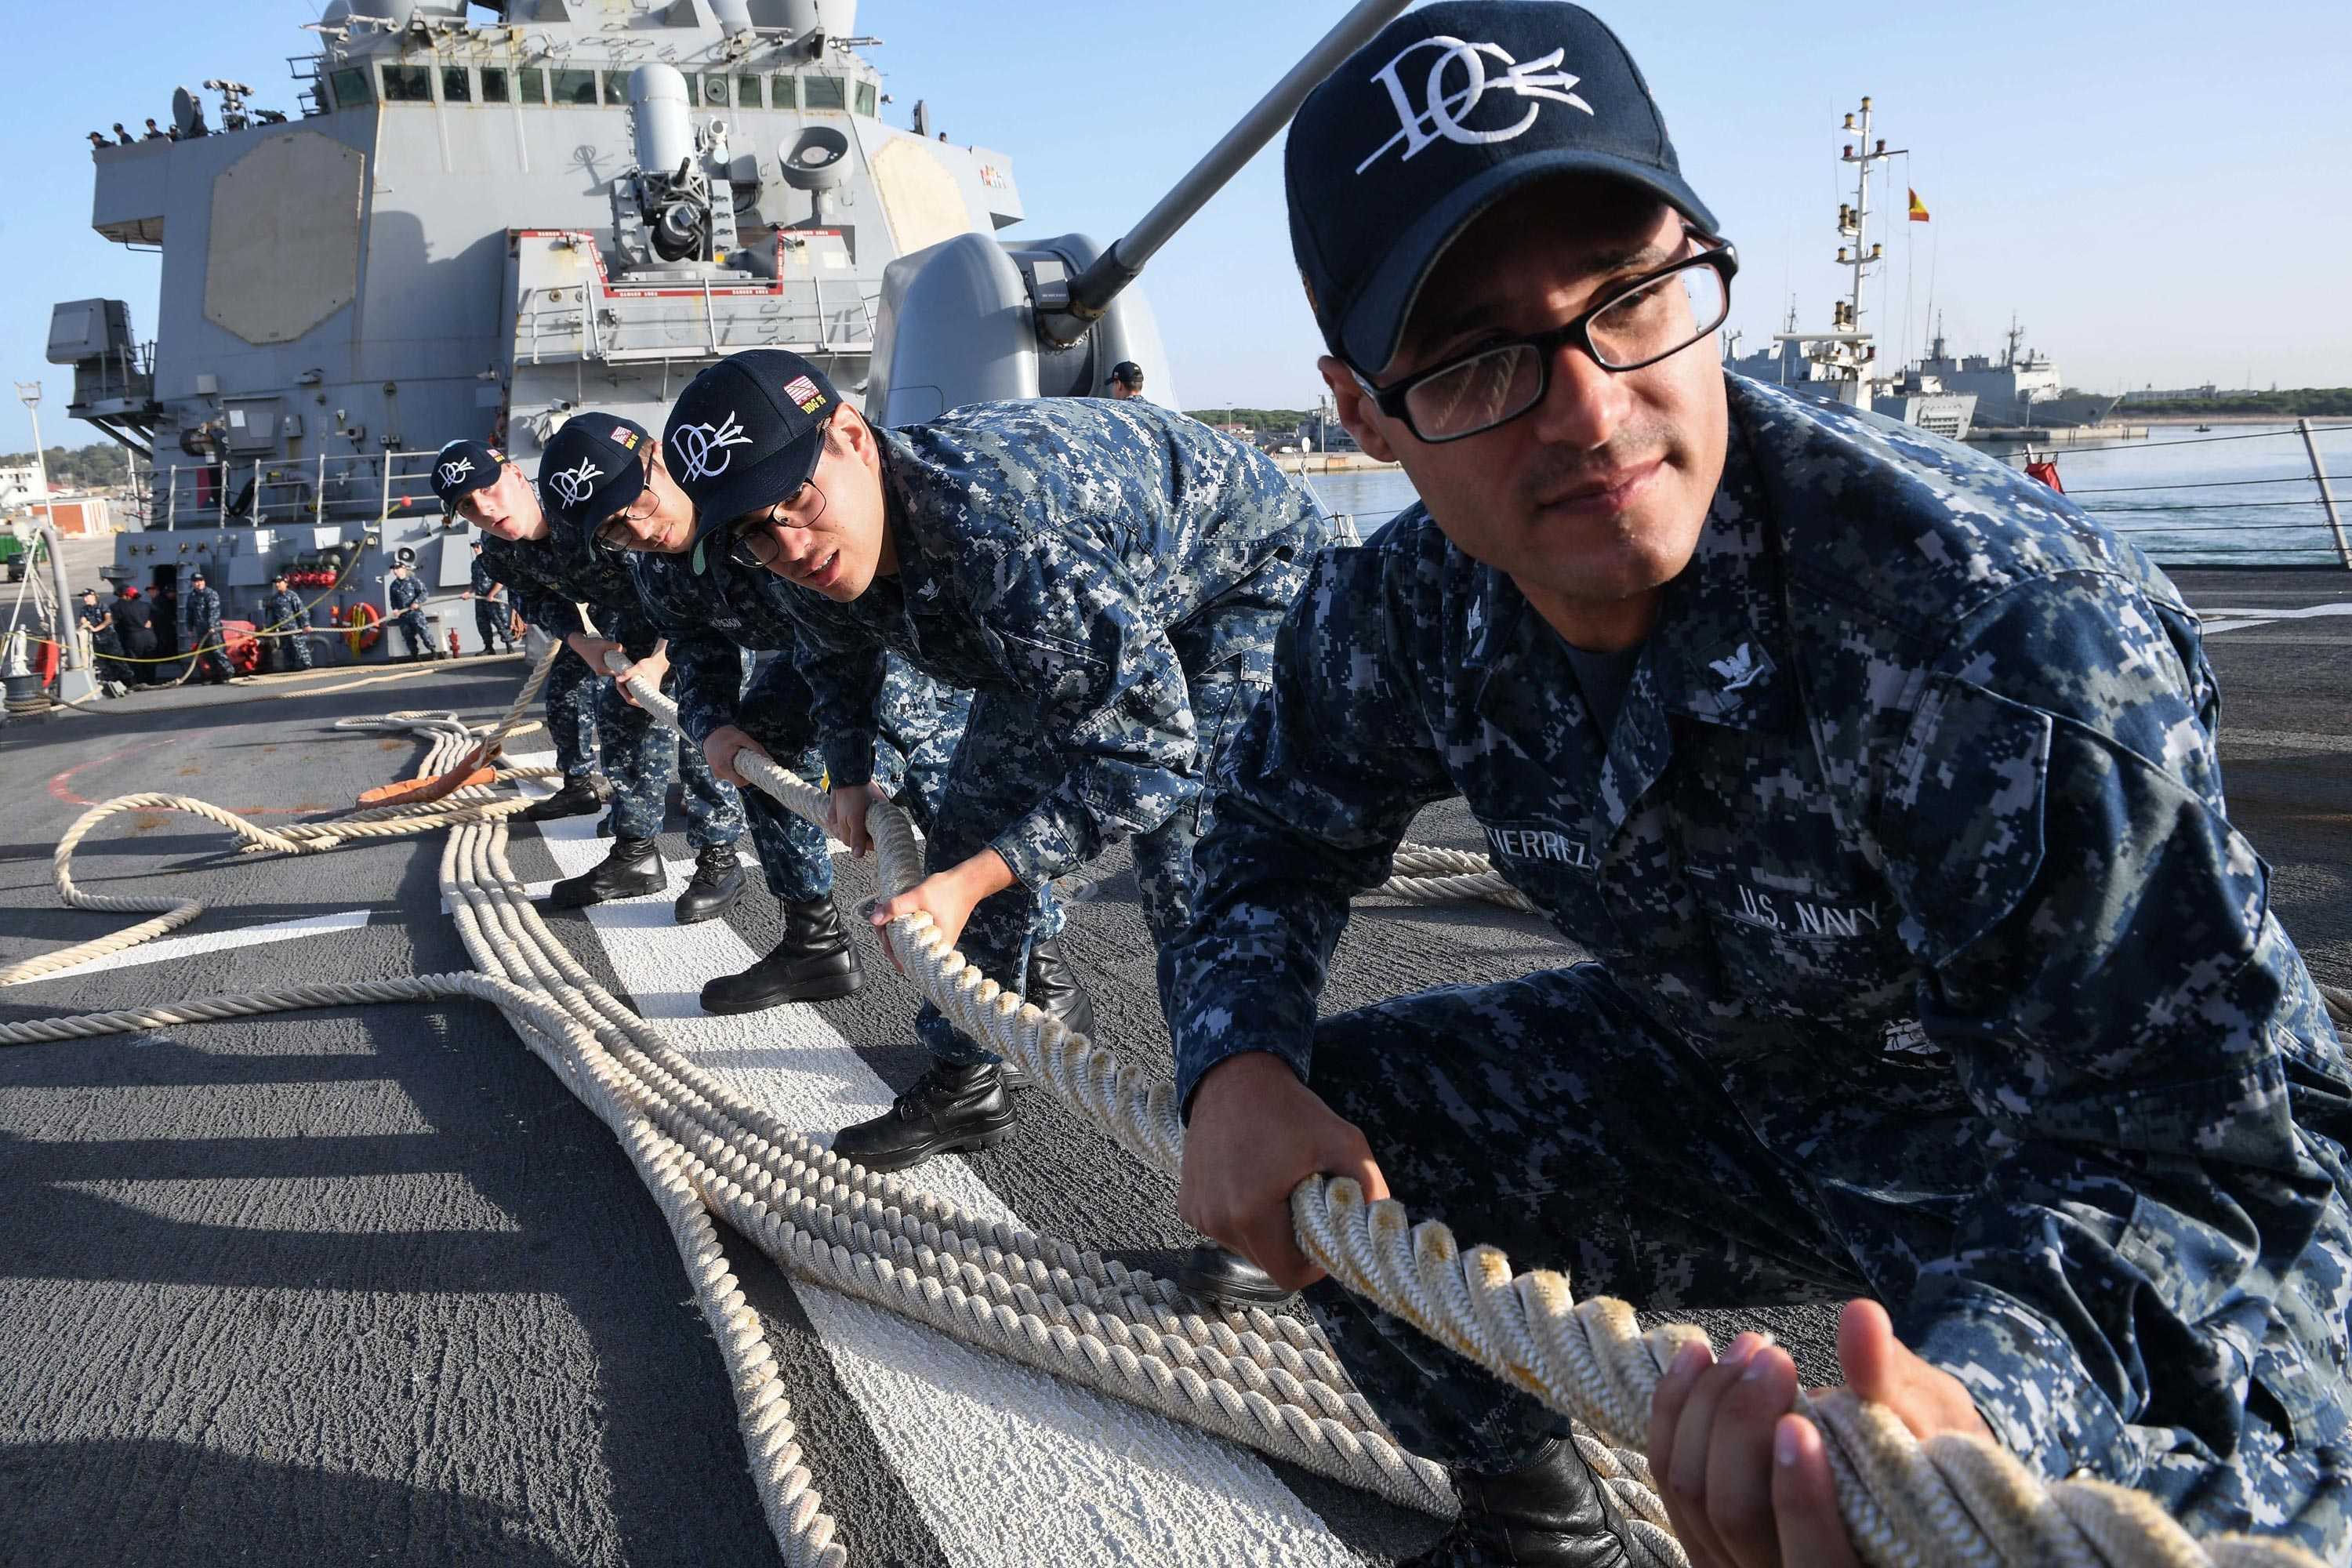 Fleet Forces Commander Wants Sailors to Work Better While Fatigued